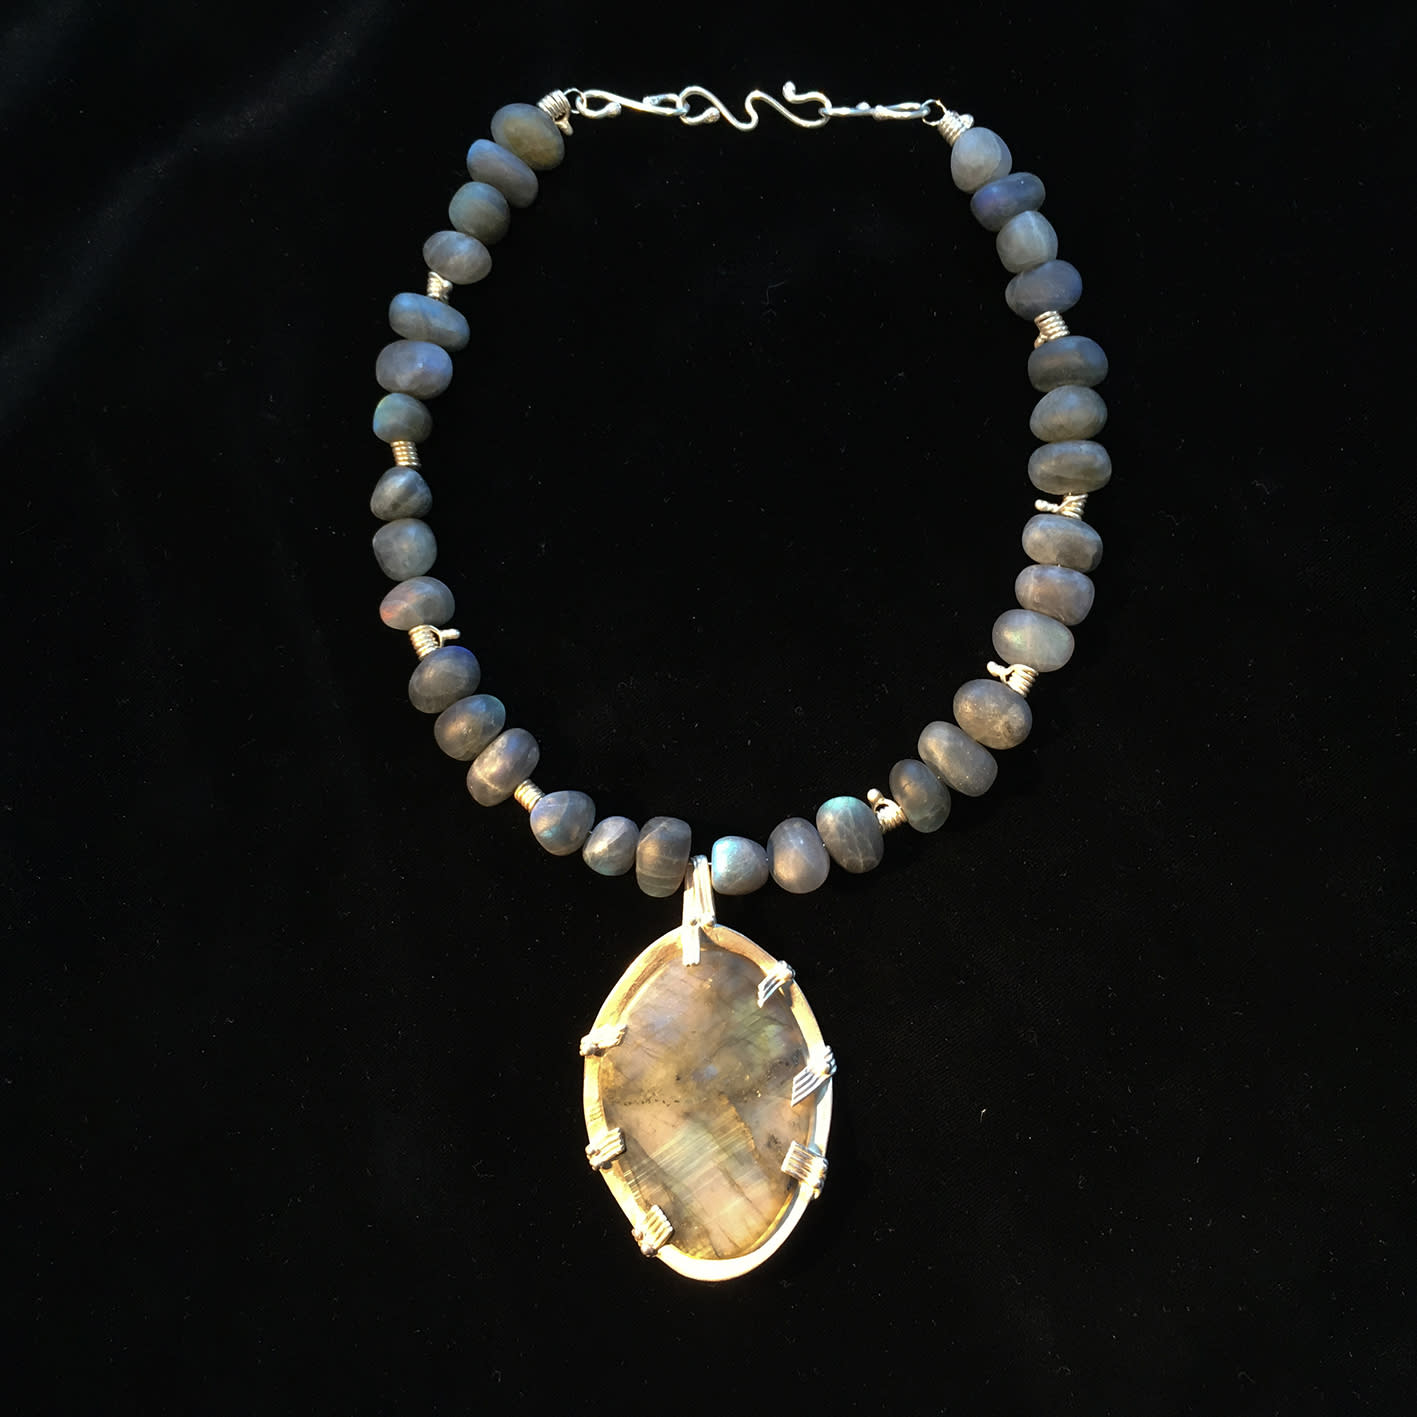 "<span class=""link fancybox-details-link""><a href=""/artists/186-helen-feiler/works/6744-helen-feiler-labradorite-pendant-with-labradorite-beads-and-silver-2019/"">View Detail Page</a></span><div class=""artist""><strong>Helen Feiler</strong></div> <div class=""title""><em>Labradorite Pendant with Labradorite Beads and Silver</em>, 2019</div> <div class=""medium"">Labradorite and silver on stainless steel wire</div><div class=""copyright_line"">Own Art: £88.00 x 10 monthly payments</div>"